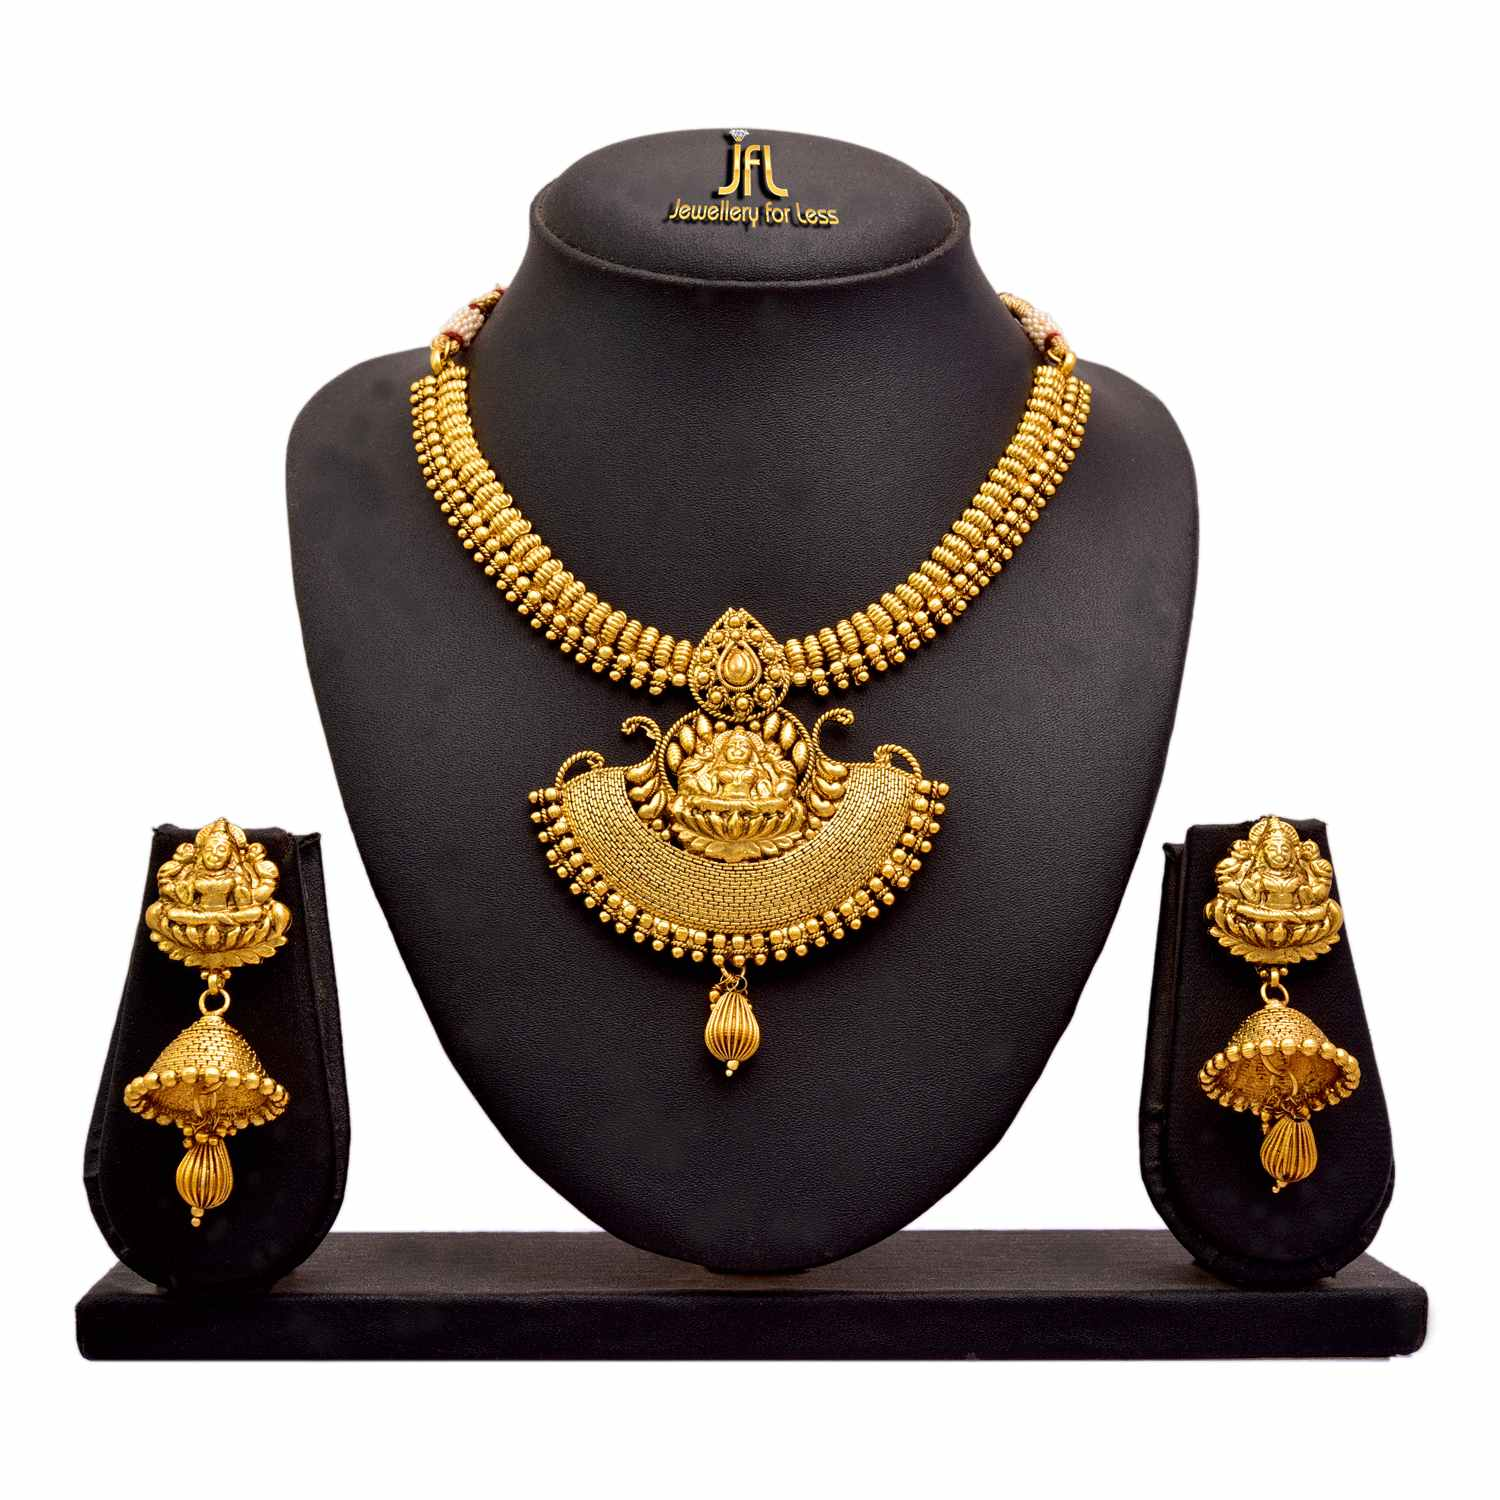 JFL - Jewellery For Less Traditional Ethnic Temple Goddess Laxmi One Gram Gold Plated Necklace Set Jhumka Earring For Women